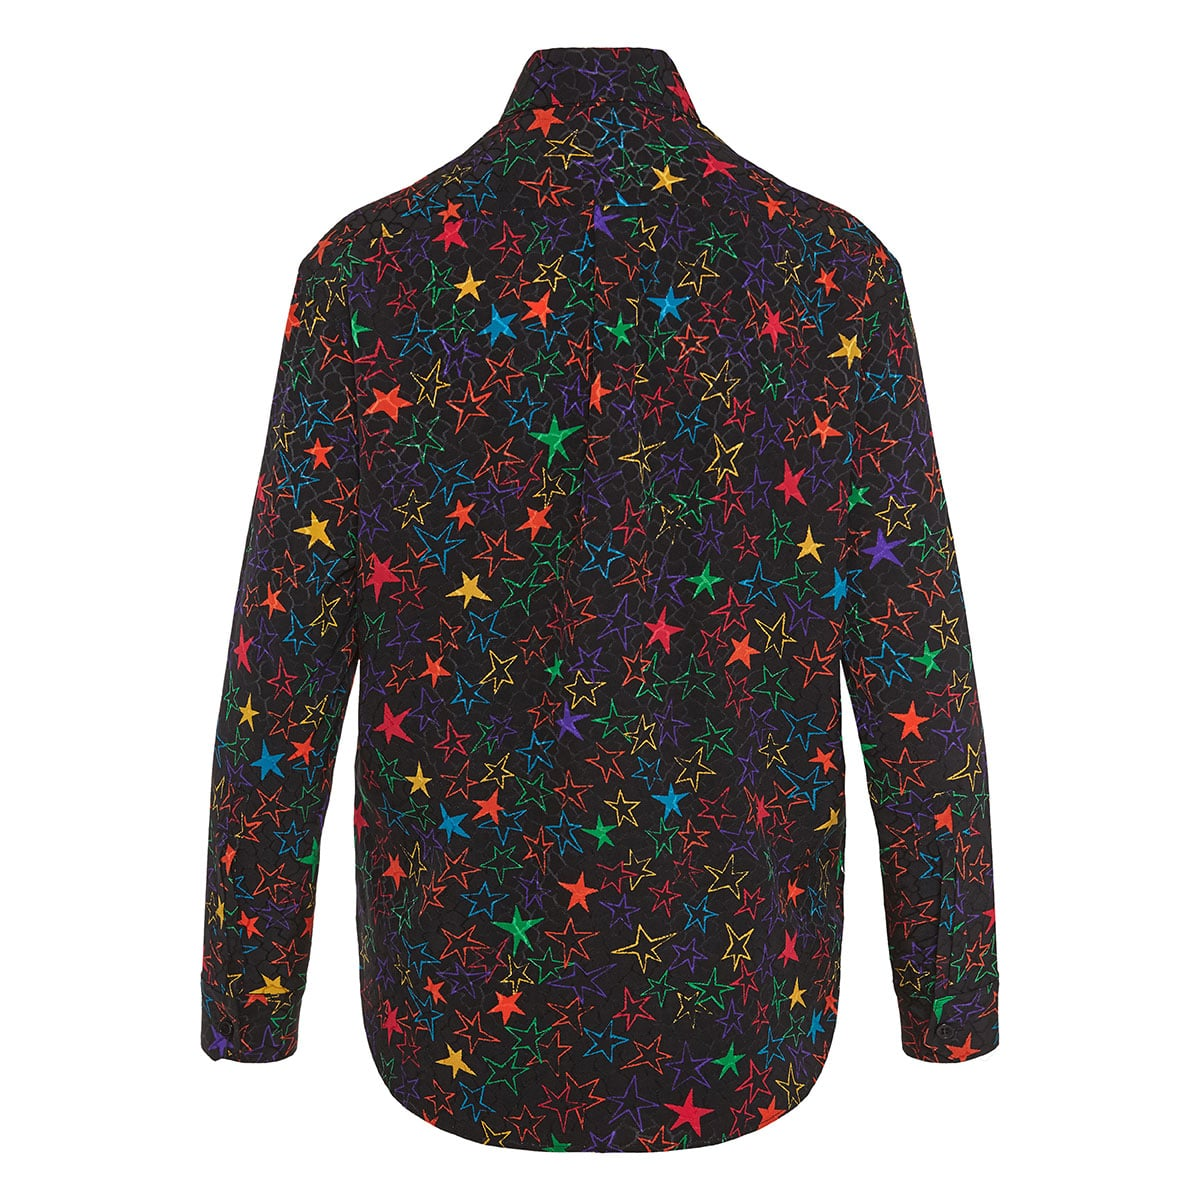 Star-print jacquard silk shirt